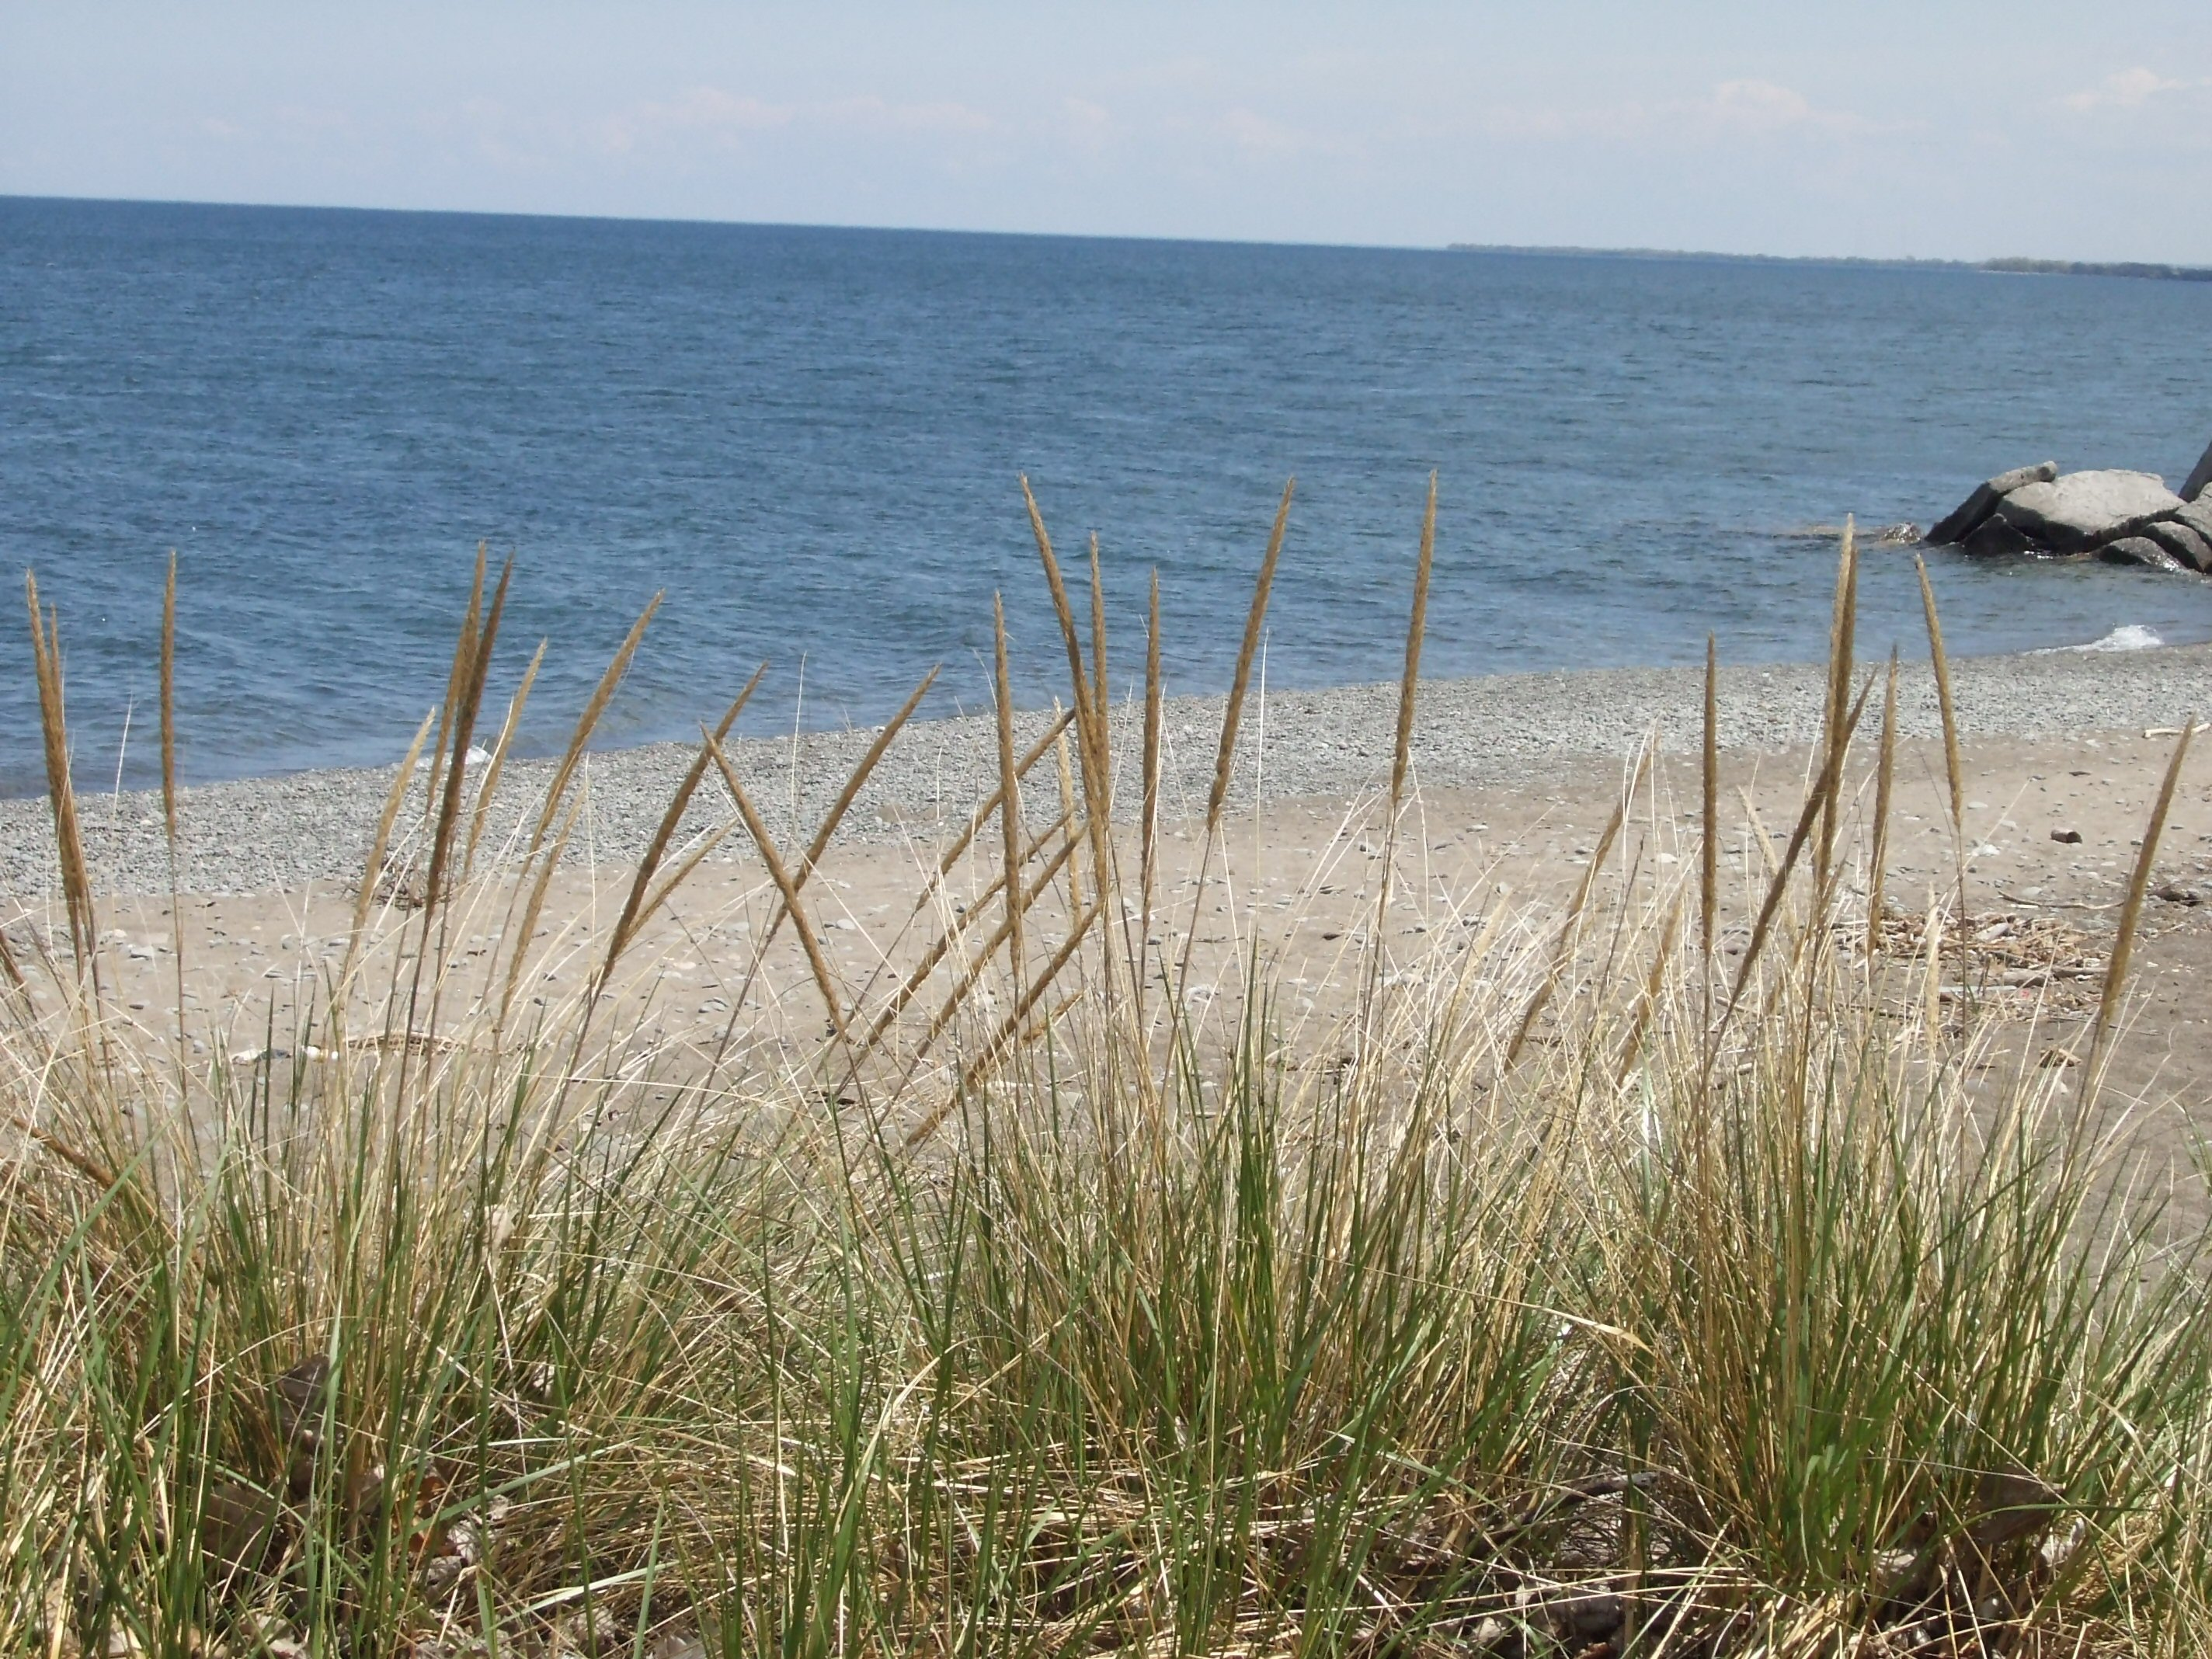 Grass at the beach photo